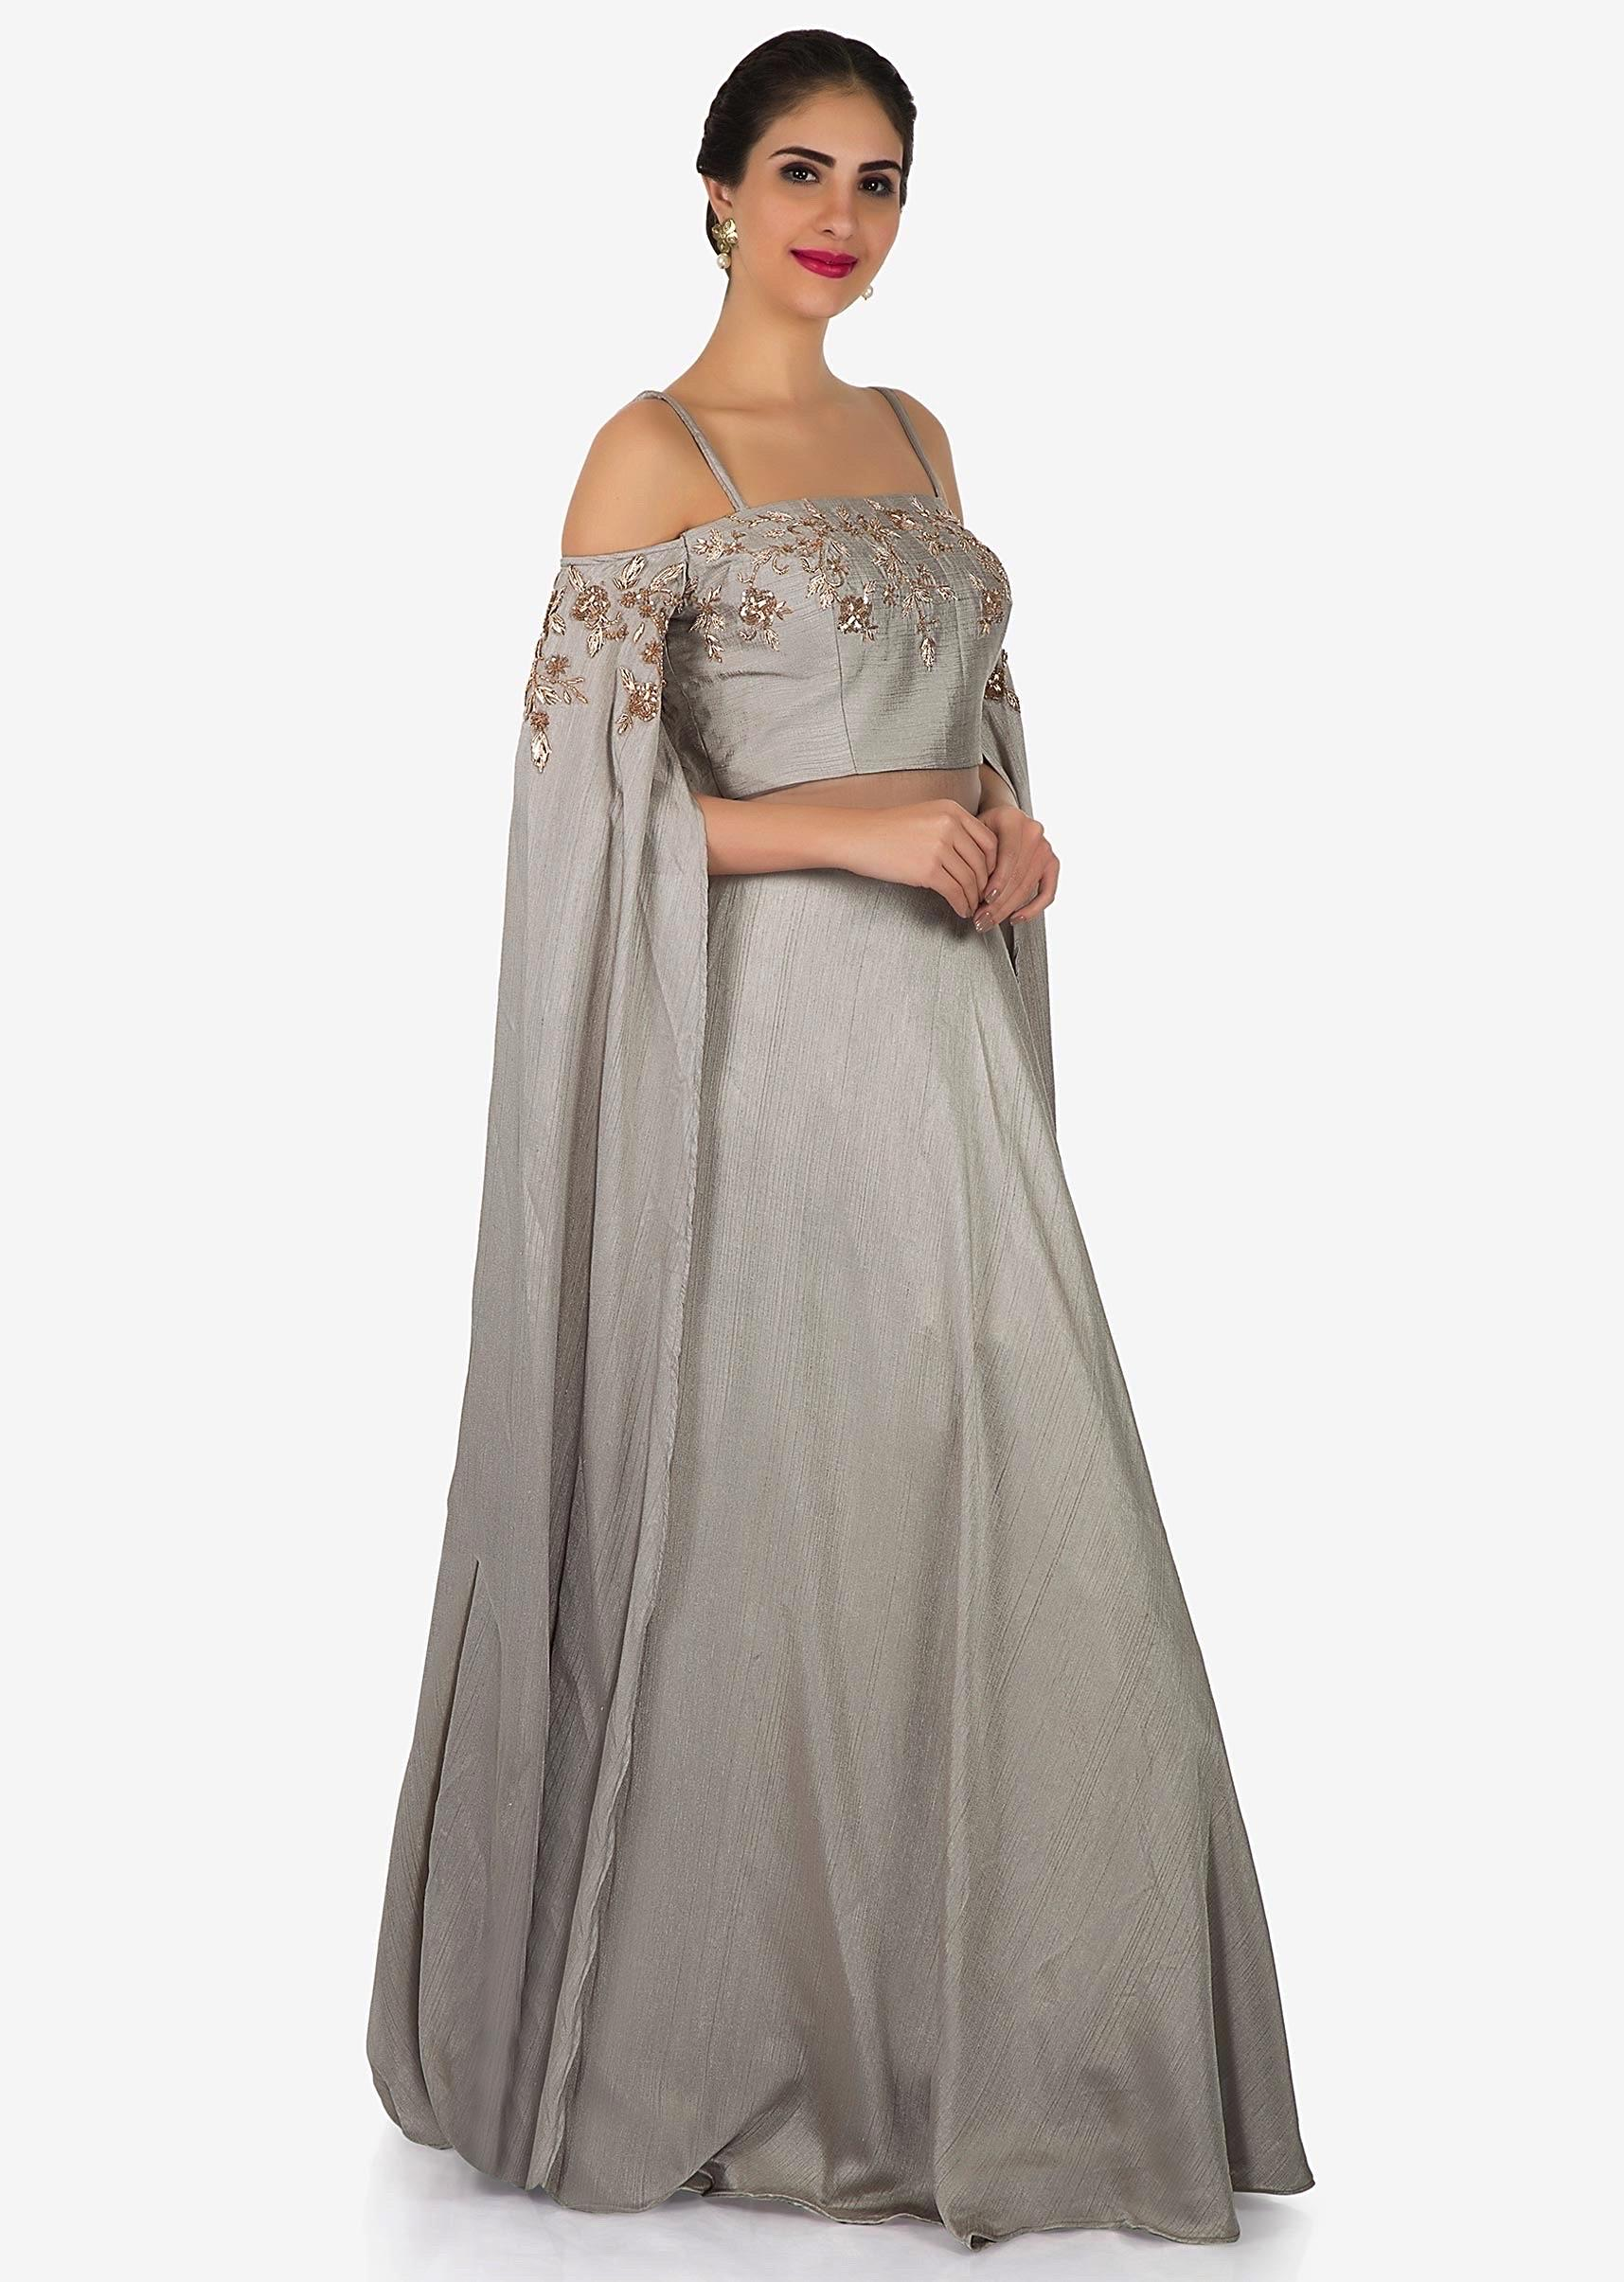 Grey Gown In Taffeta Silk With Cold Shoulder And Long Sleeve Only On